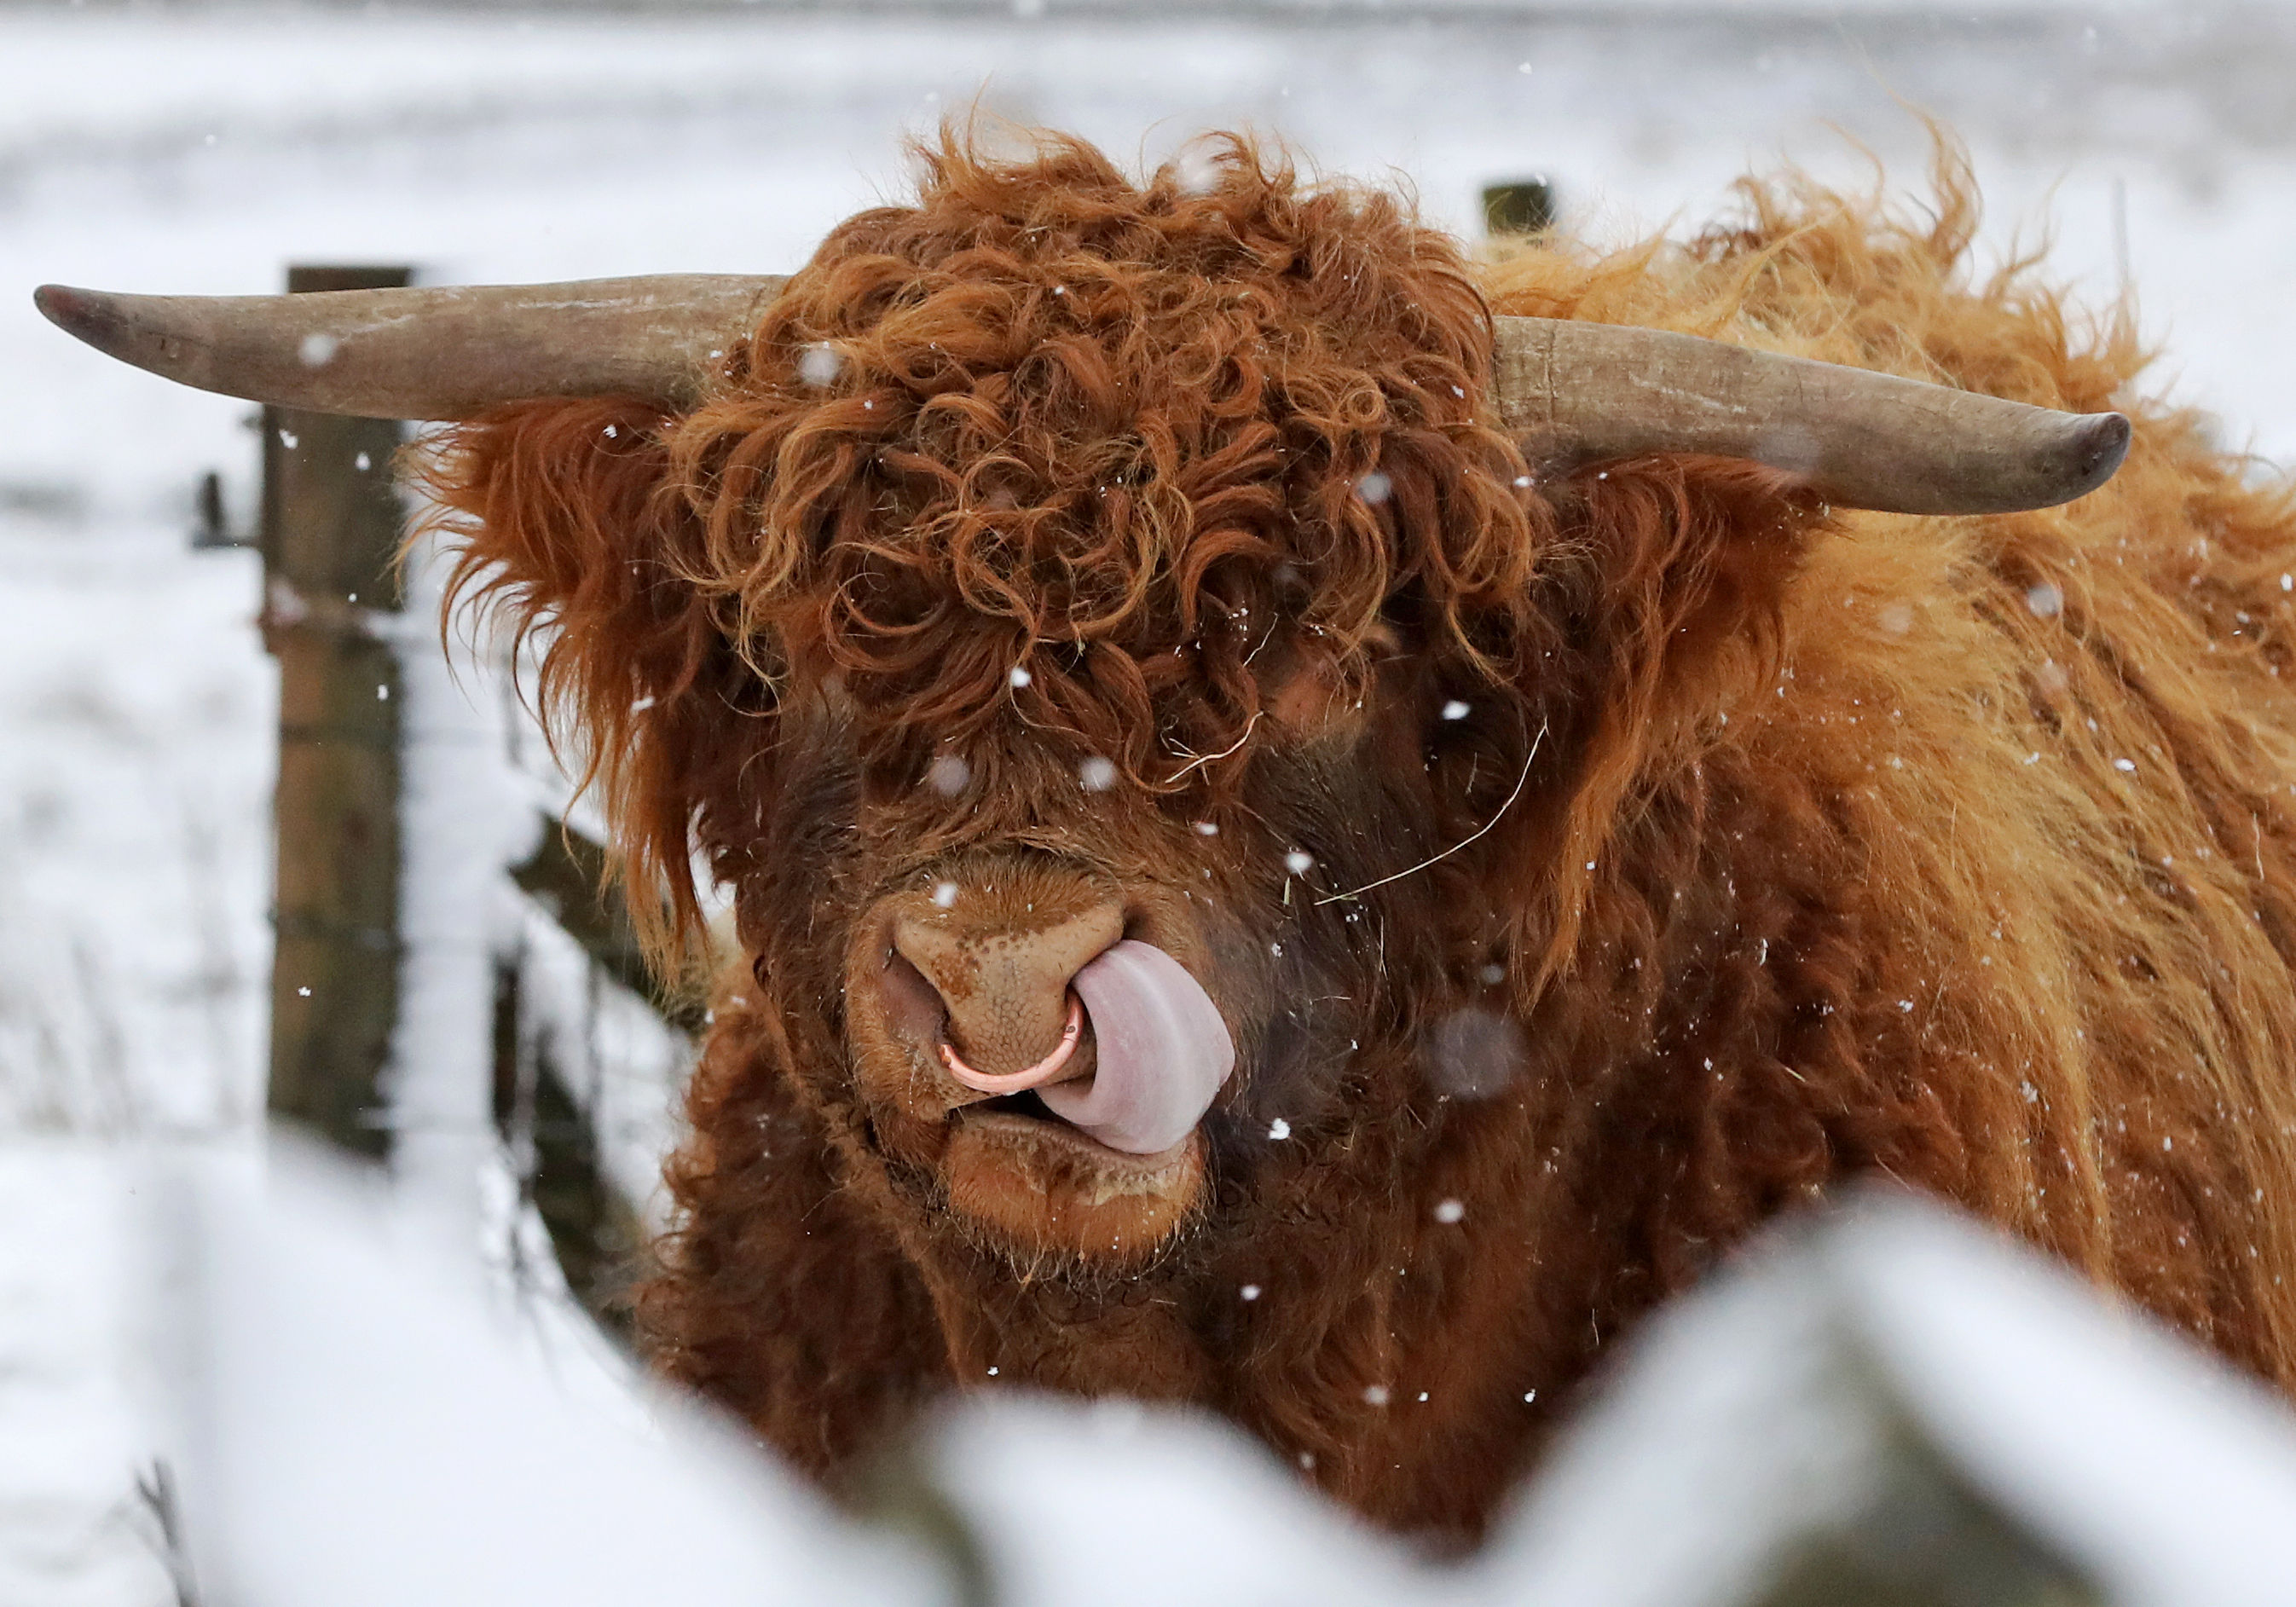 Highland cattle in the snow (Owen Humphreys/PA Wire)